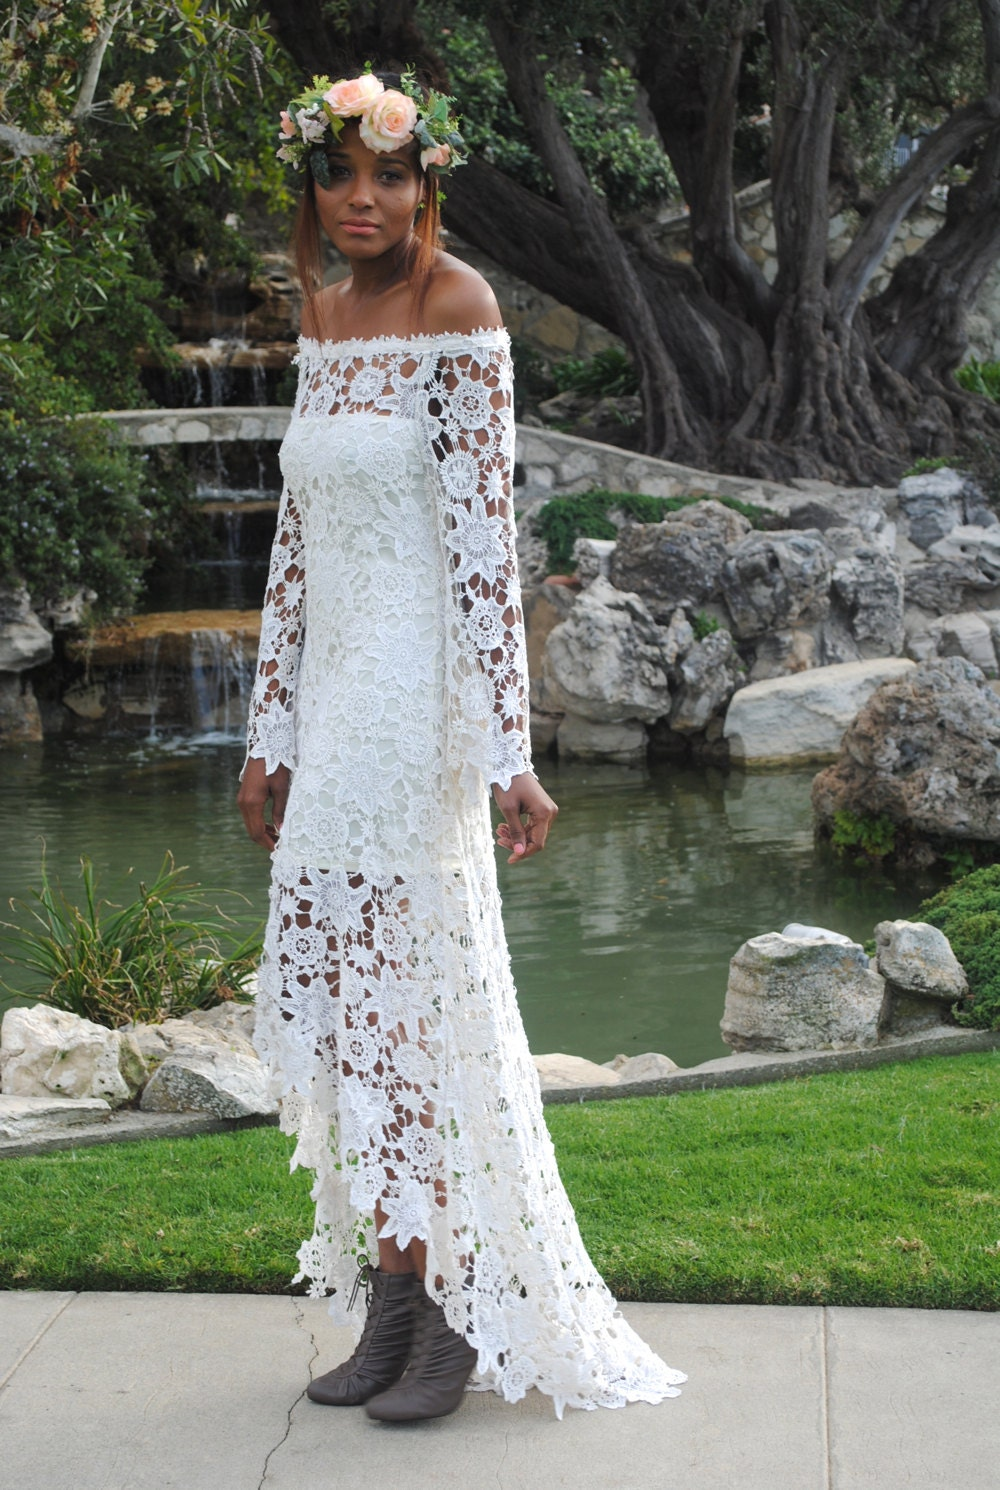 Wedding Dresses For Hippie Women High Low Lace BOHEMIAN WEDDING